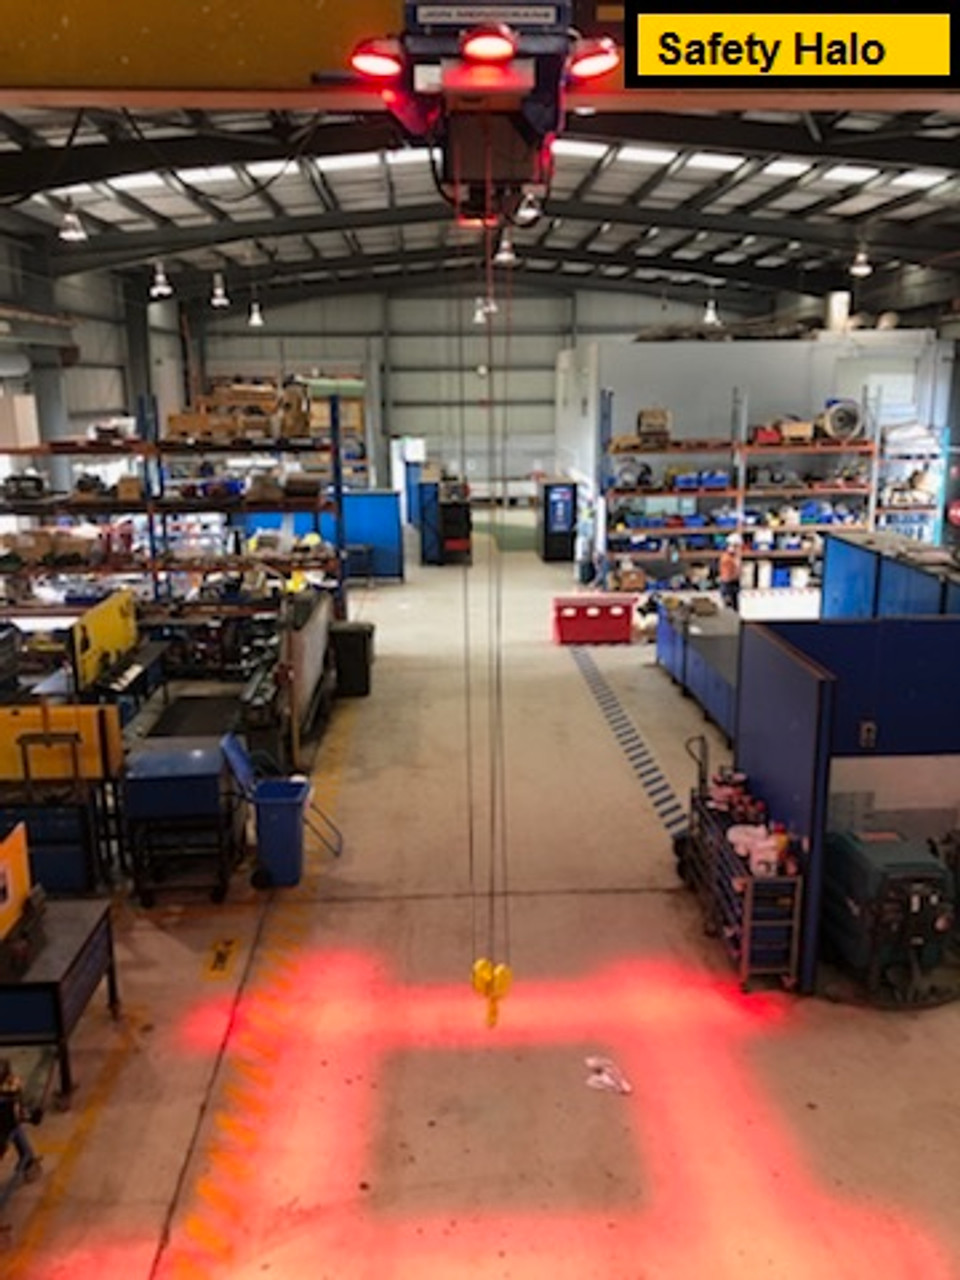 Installation of our Overhead Crane Awareness Light System in Queensland